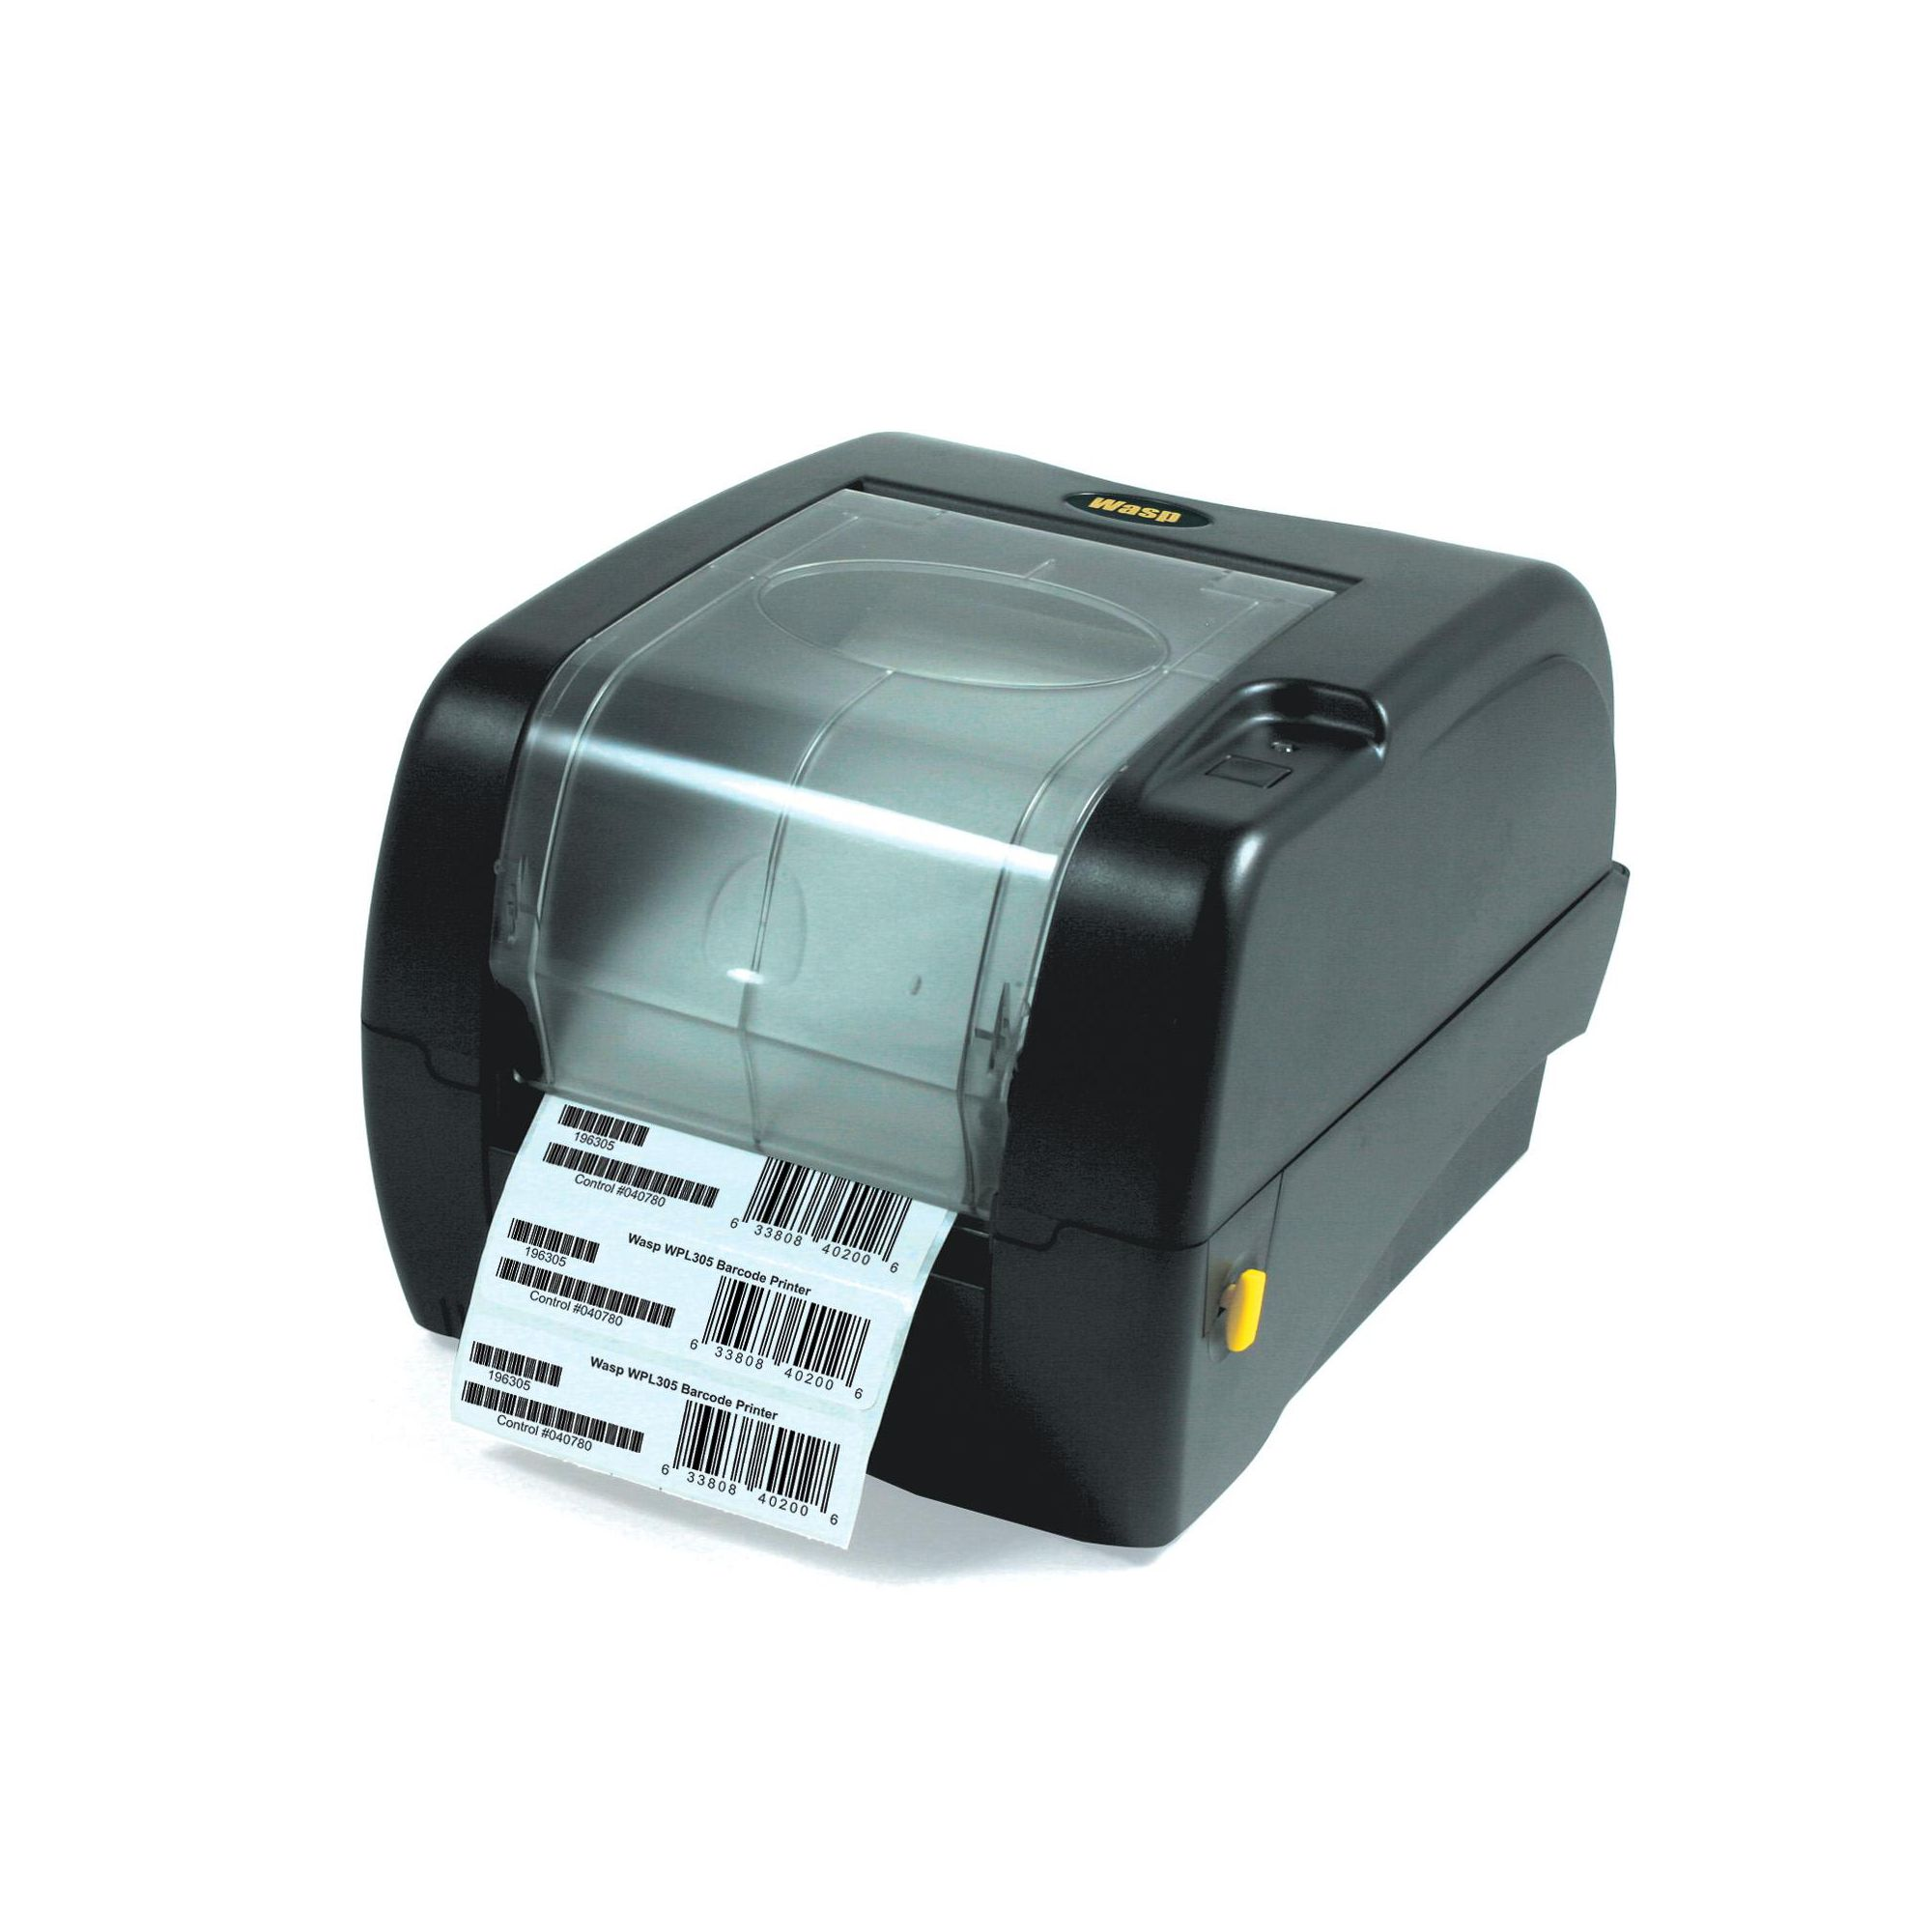 WPL305 Thermal Transfer Printer at Tesco Direct